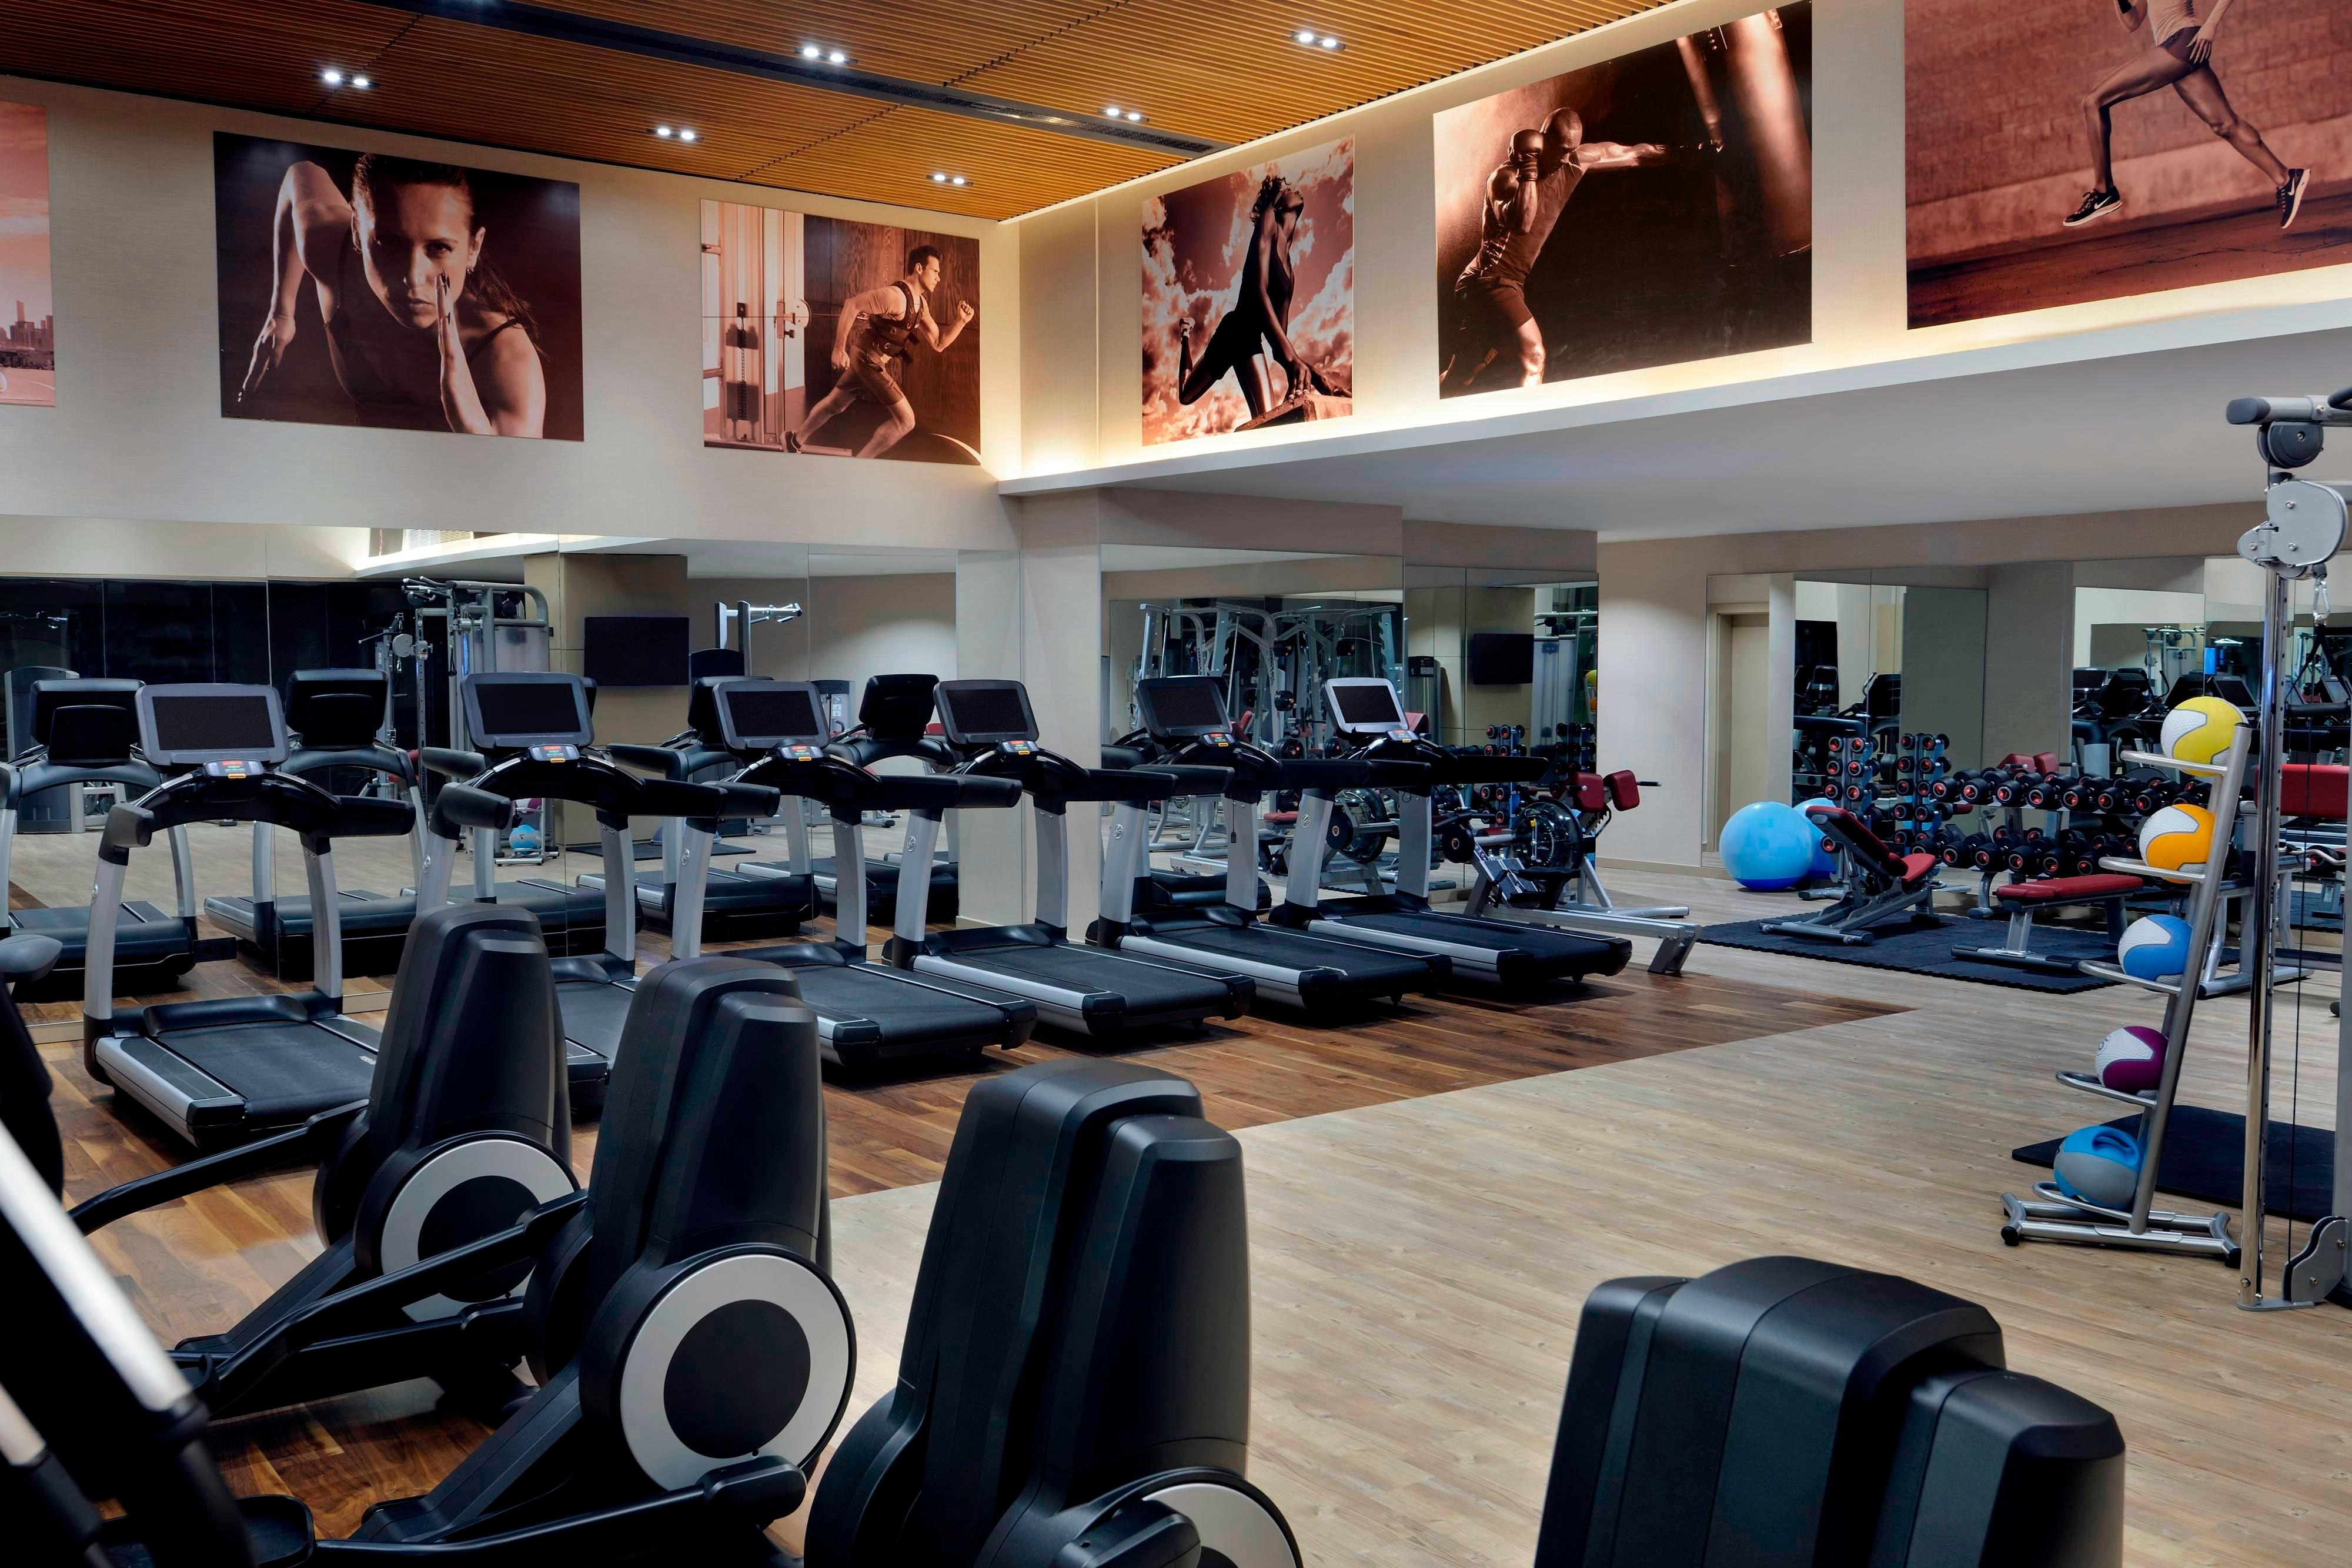 Istanbul hotel fitness center